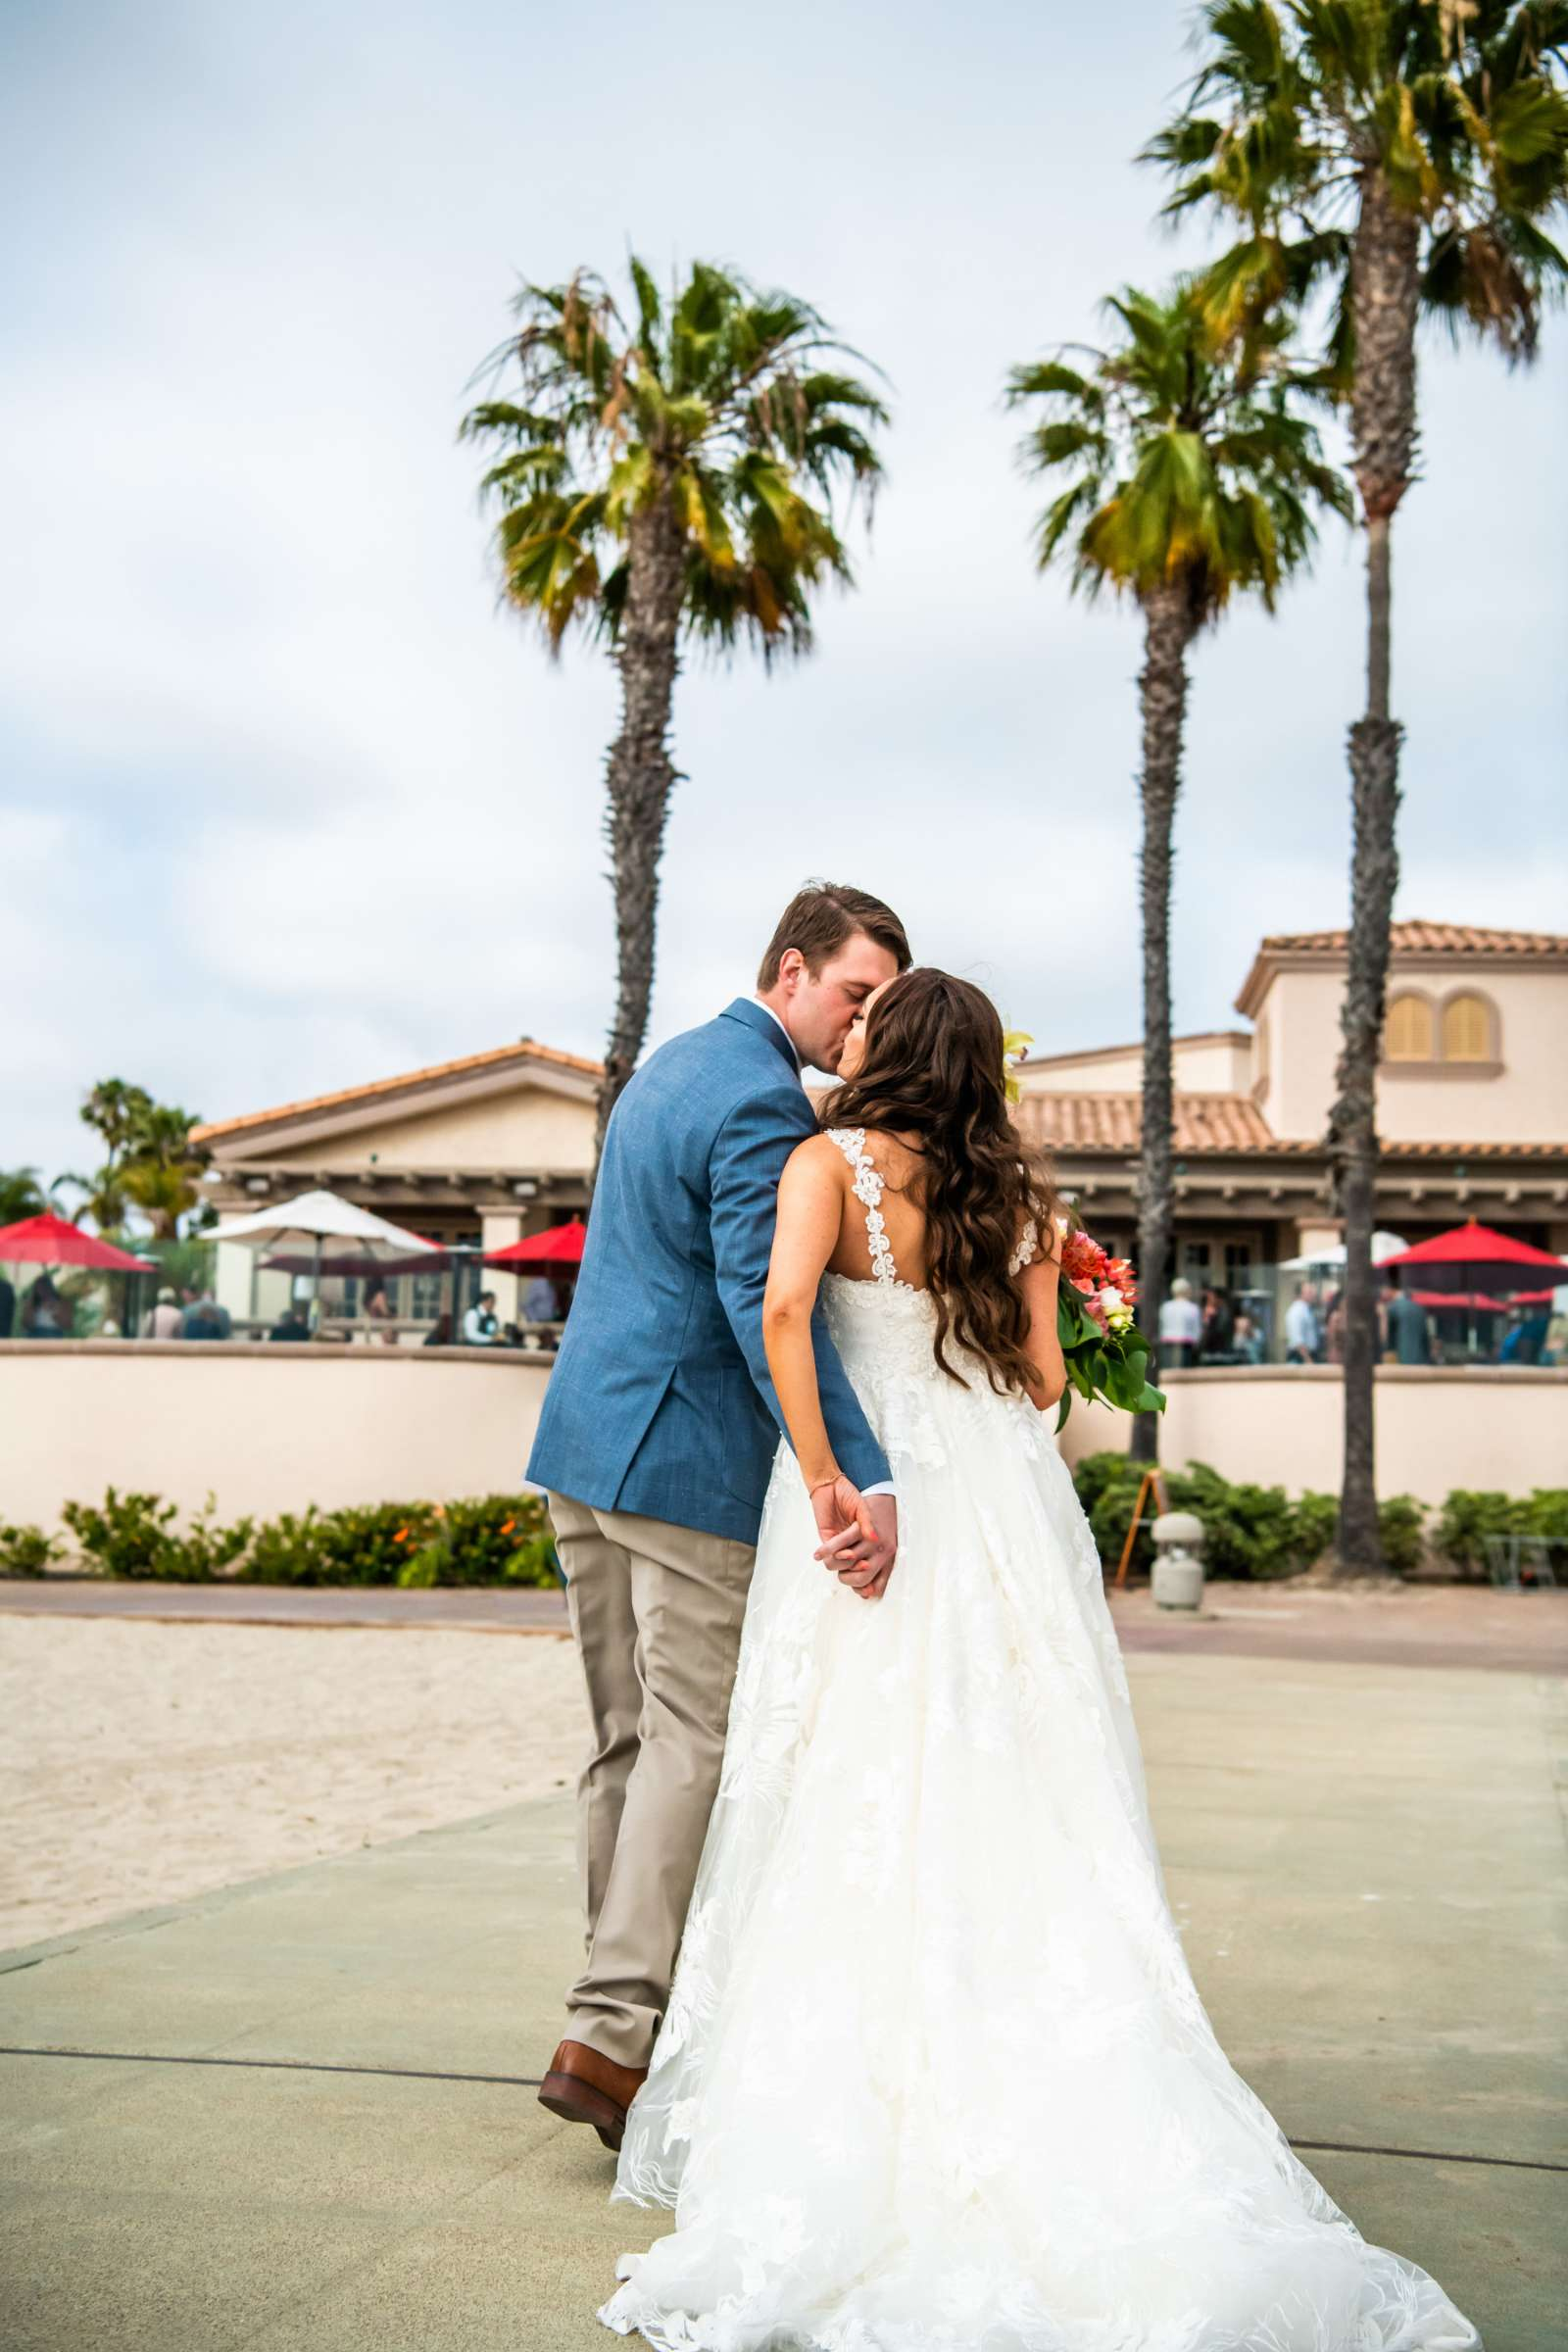 San Diego Mission Bay Resort Wedding coordinated by Cafe Au Love, Lauren and Adam Wedding Photo #7 by True Photography